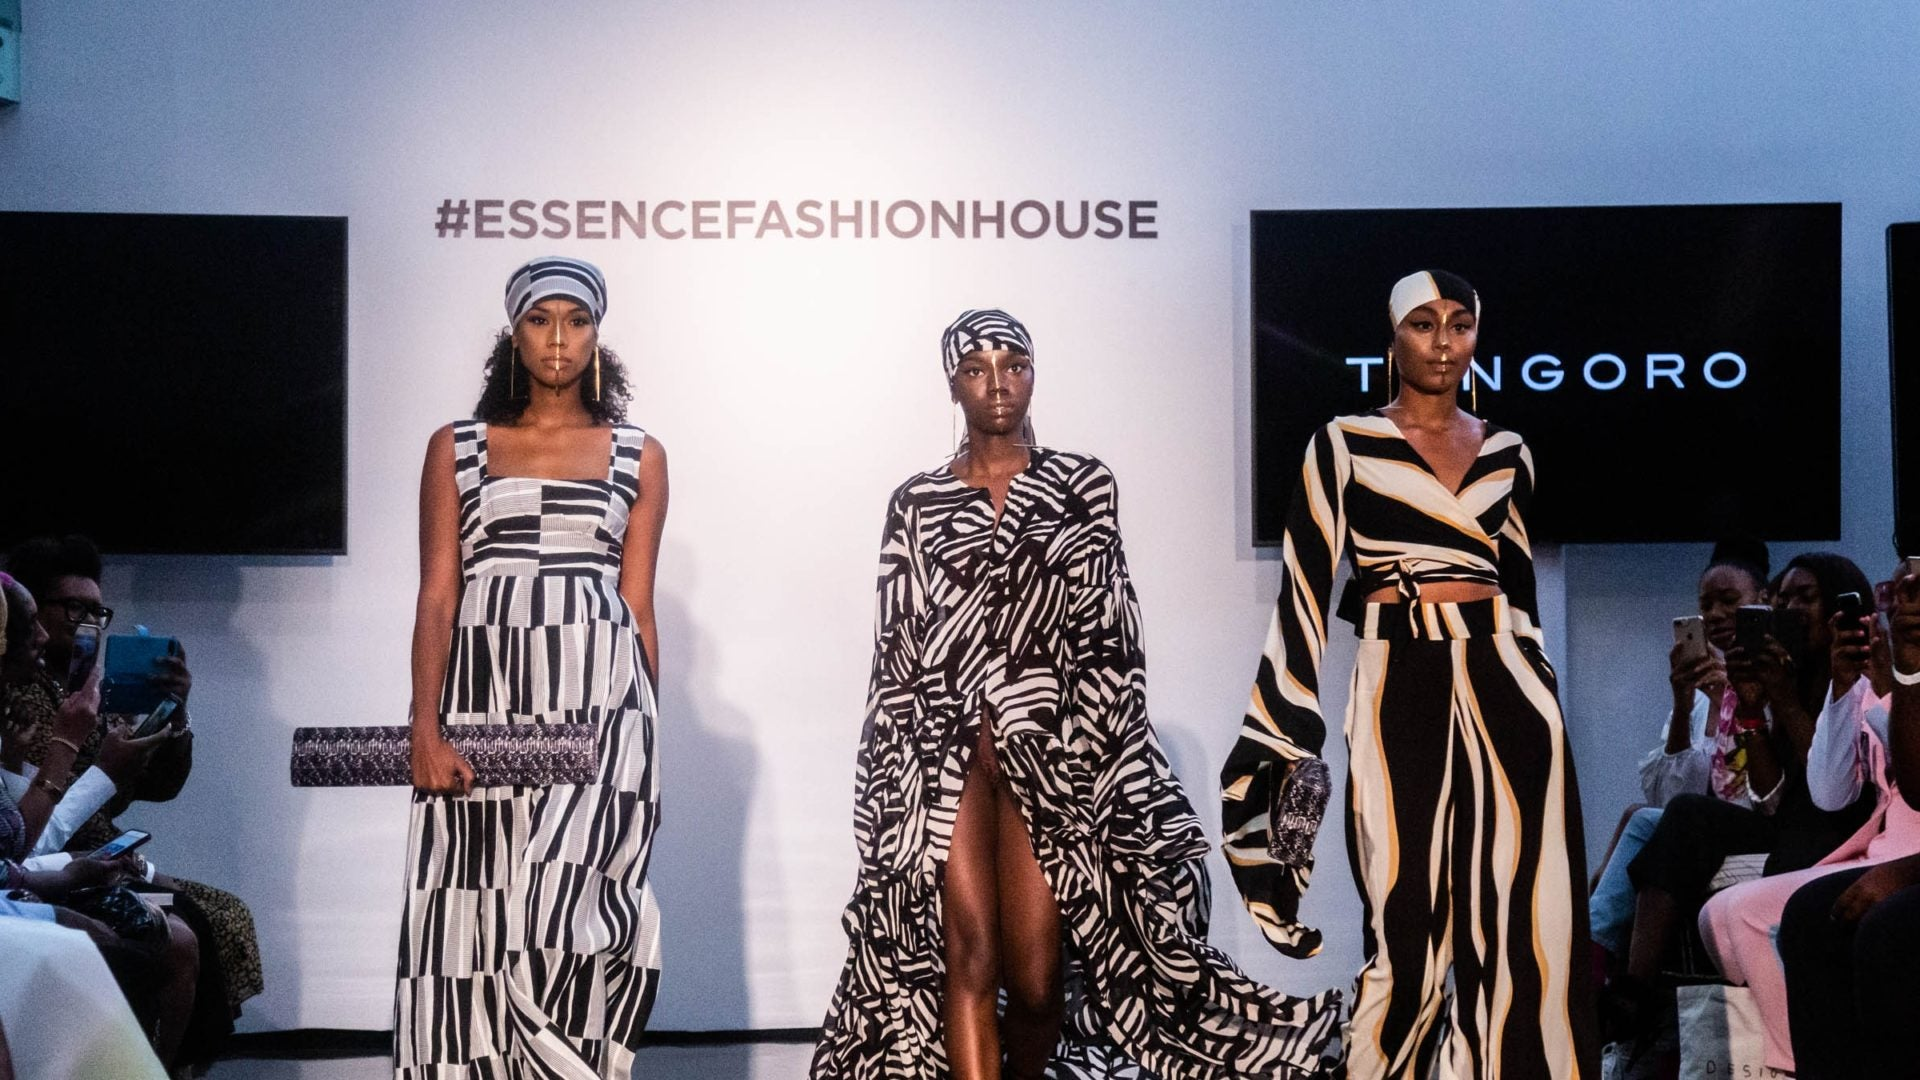 ESSENCE Fashion House NYC: Tongoro Glided Down The ESSENCE